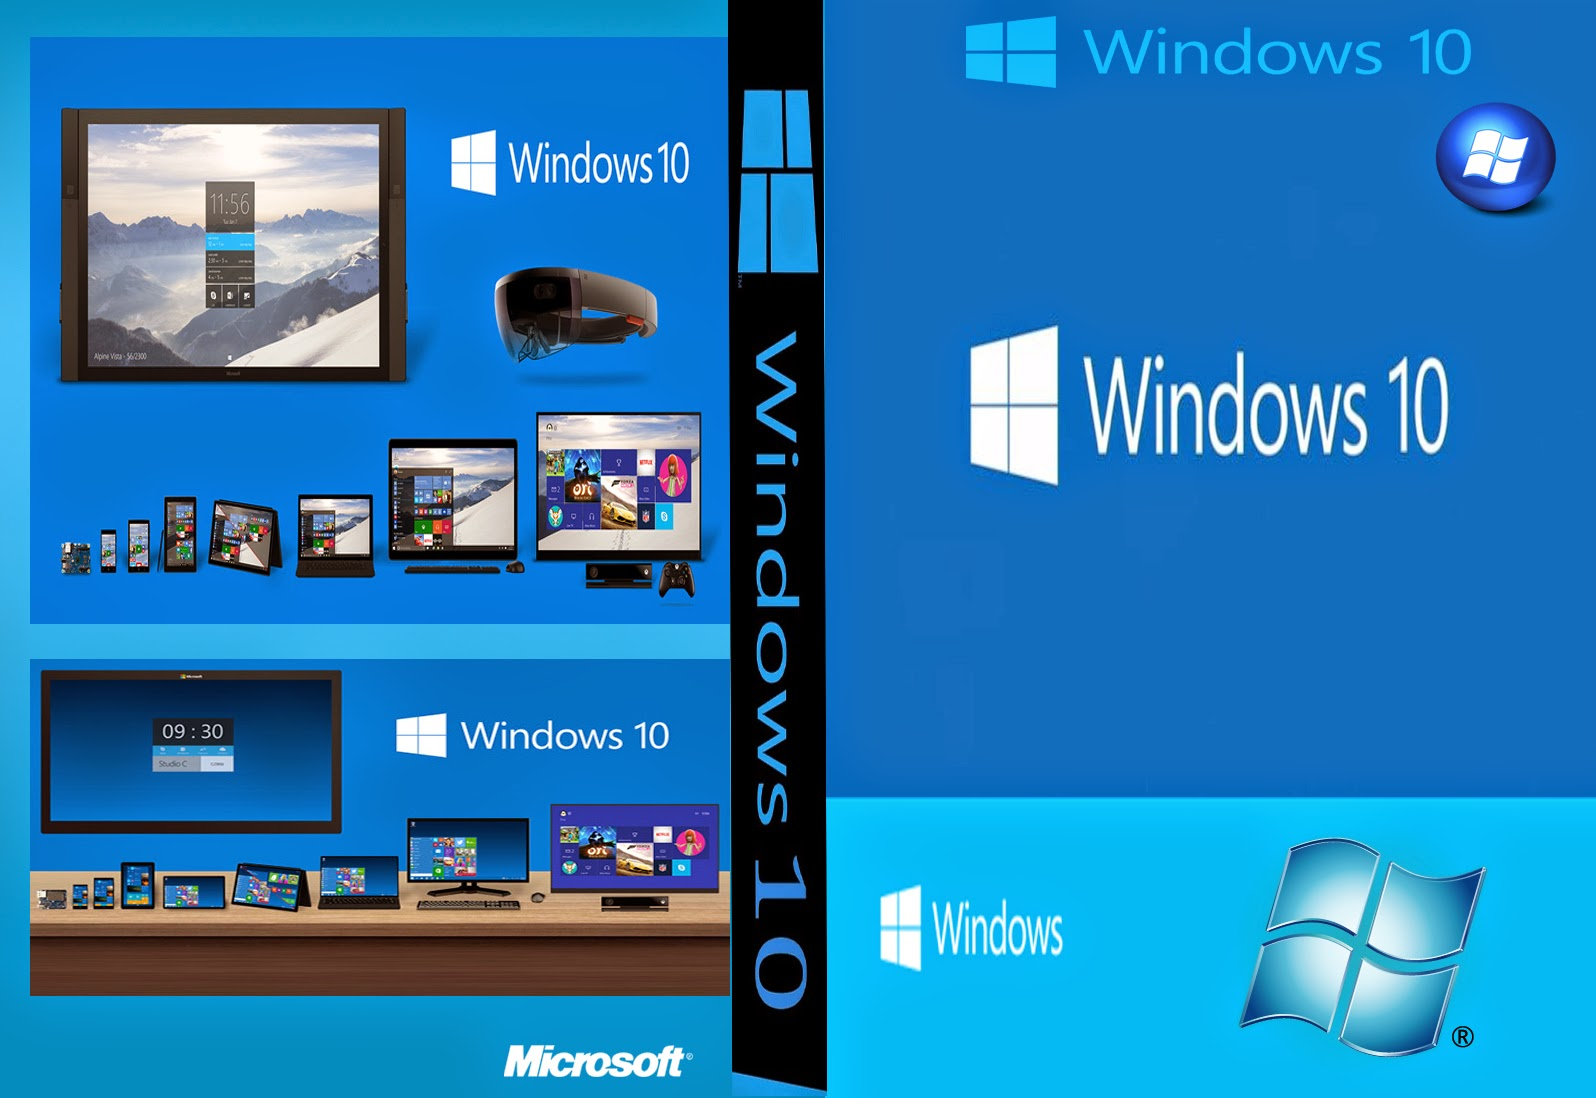 Download Windows 10 Technical x86/x64 PT-BR Windows 10 XANDAO DOWNLOAD